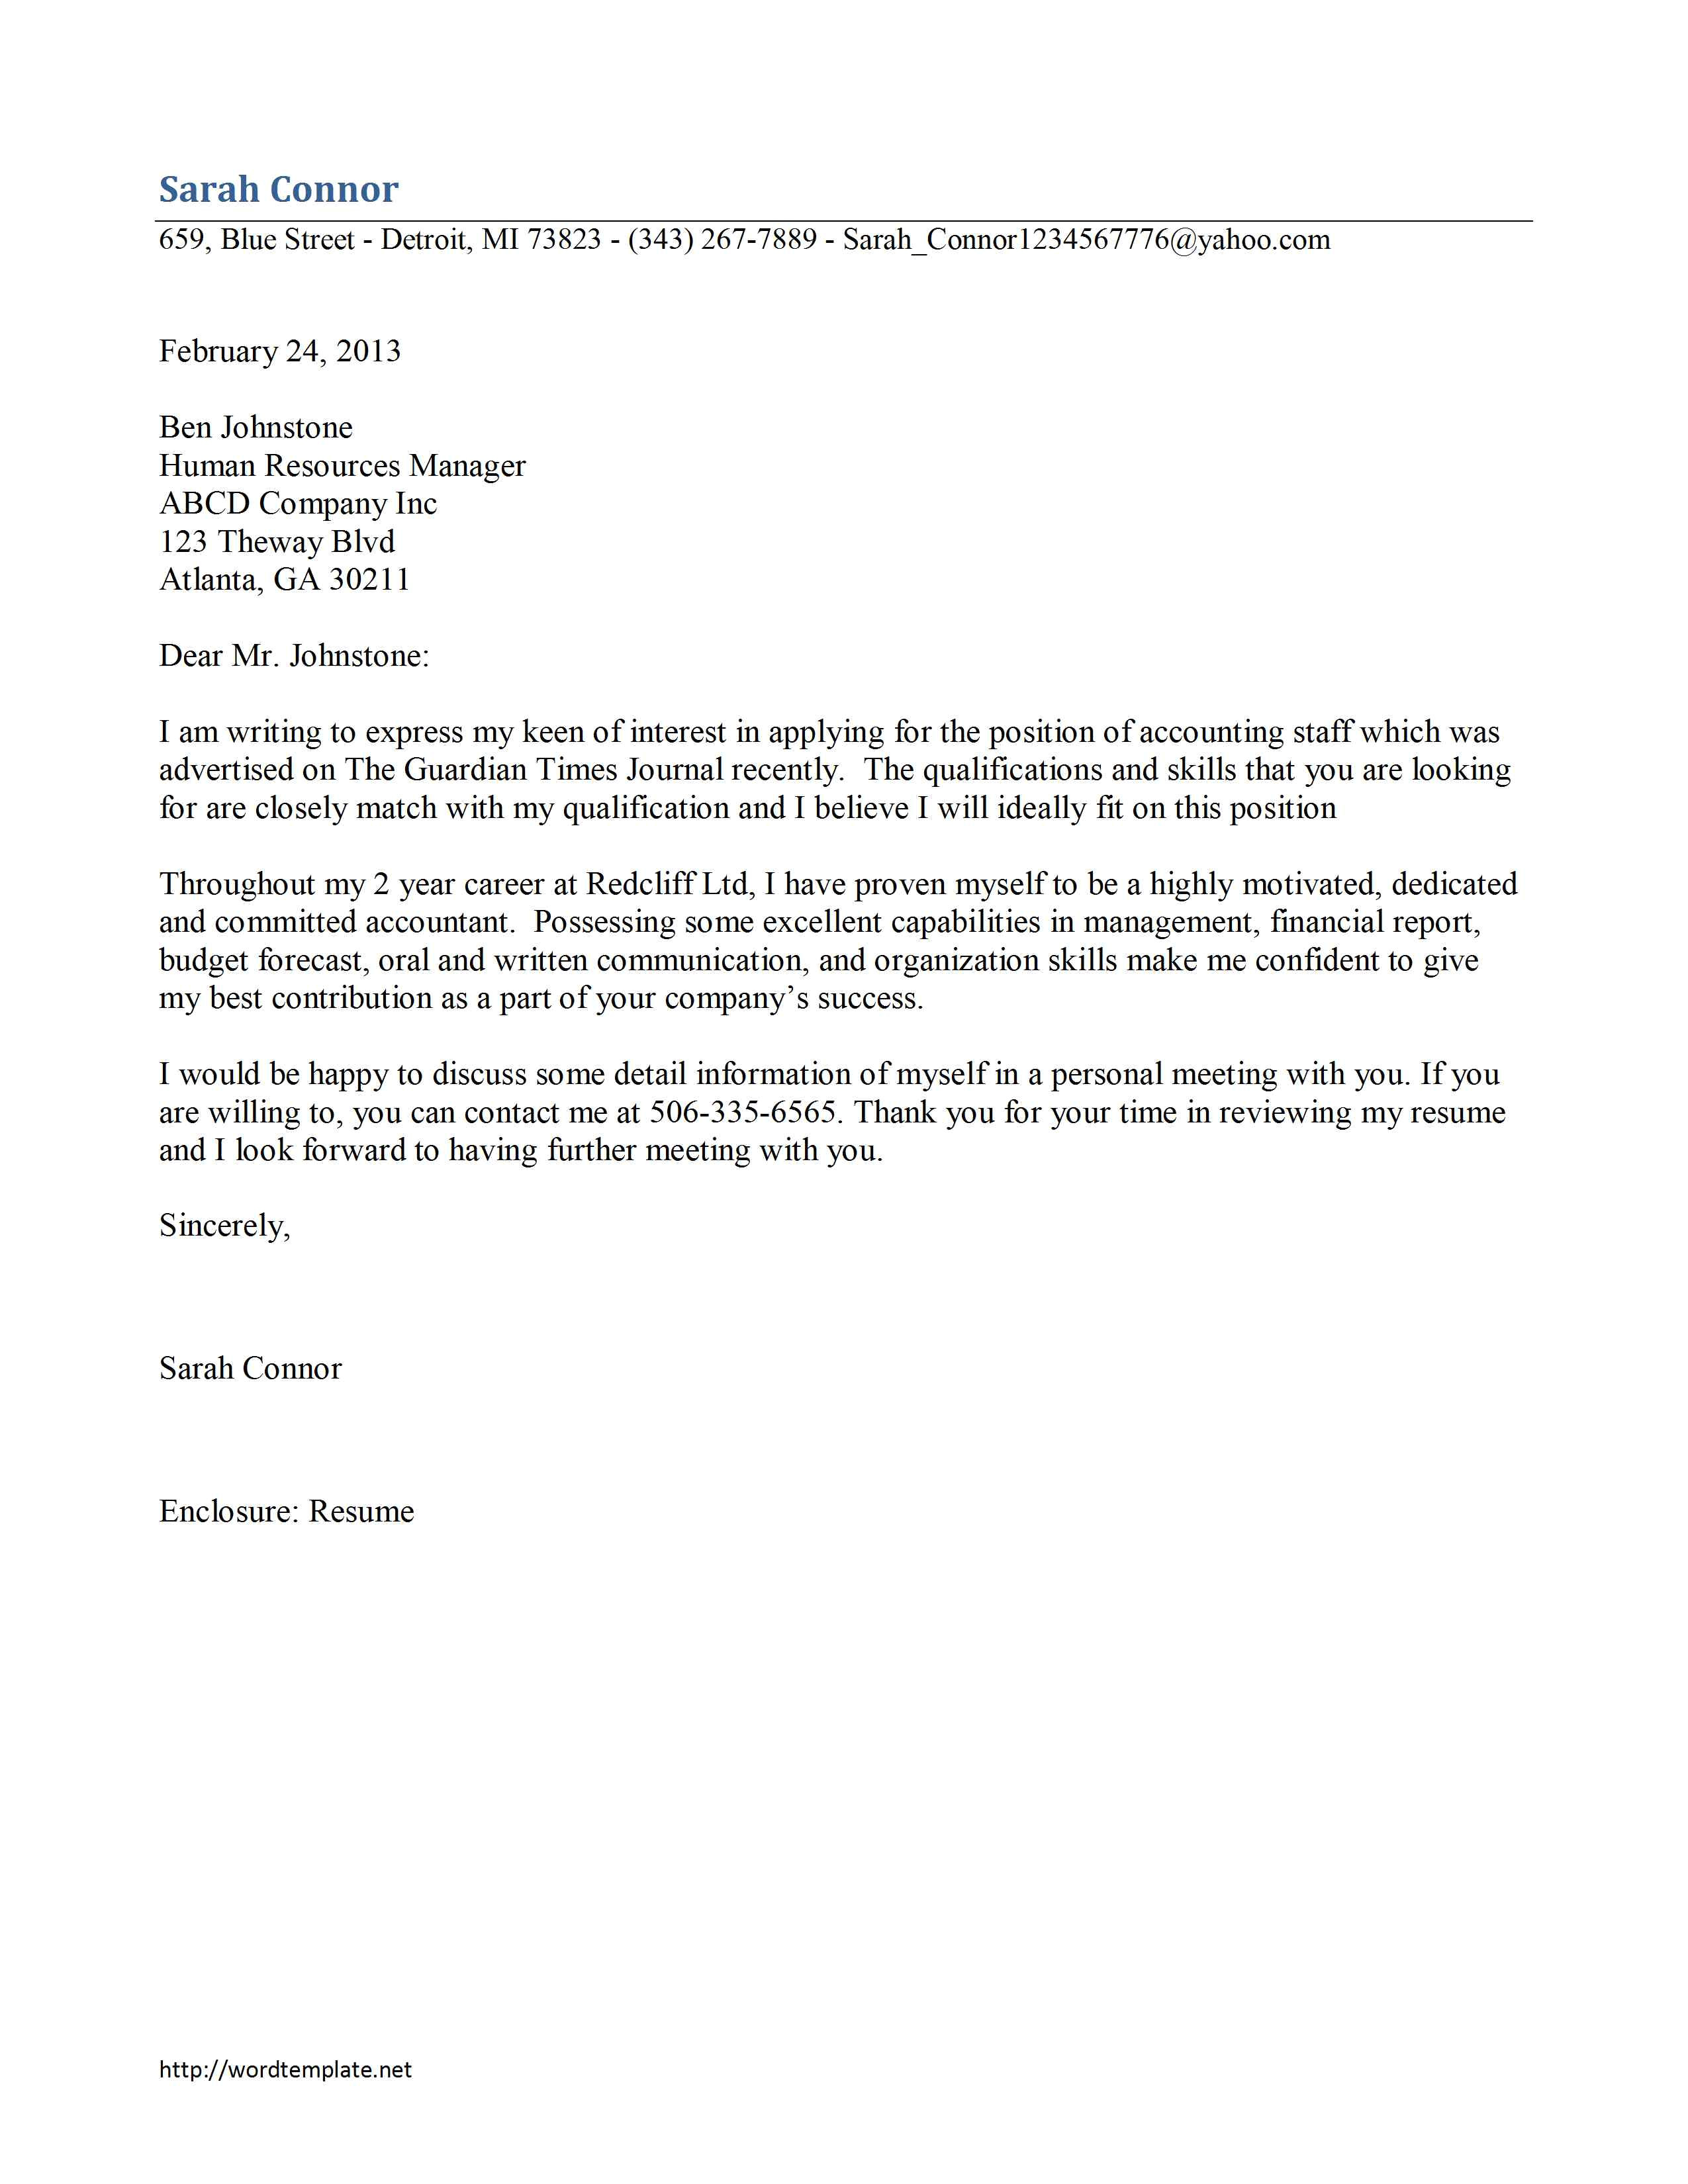 Cover Letter for An Accounting Position Accounting Staff Cover Letter Template